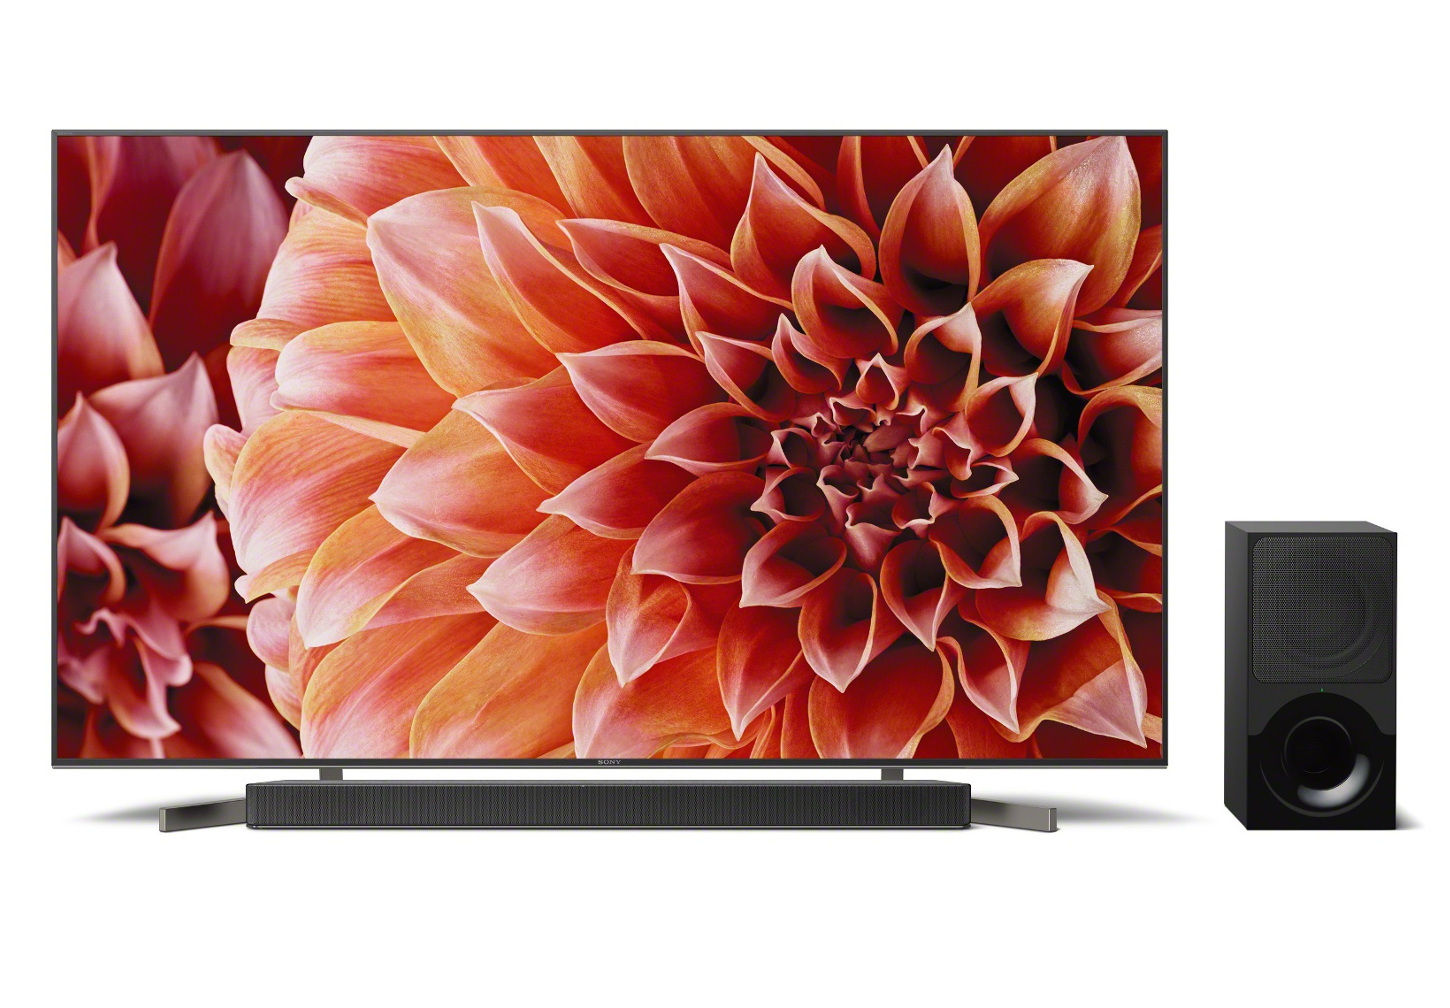 Philips 32PDL7906T/12 Smart LED TV Drivers for Windows Download